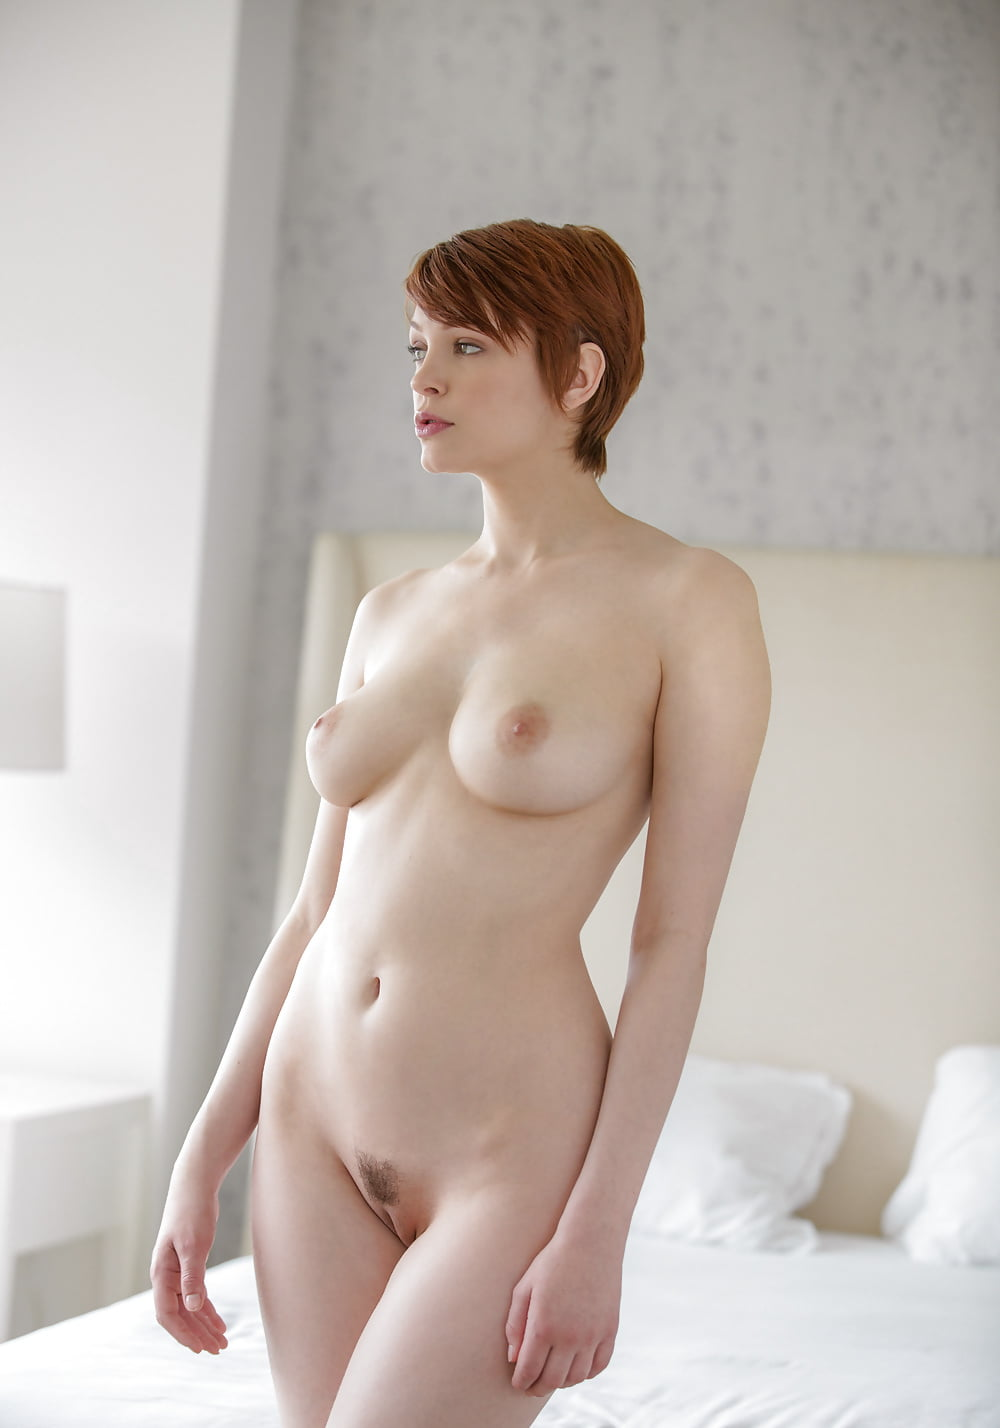 Hot short haired nudes — pic 9